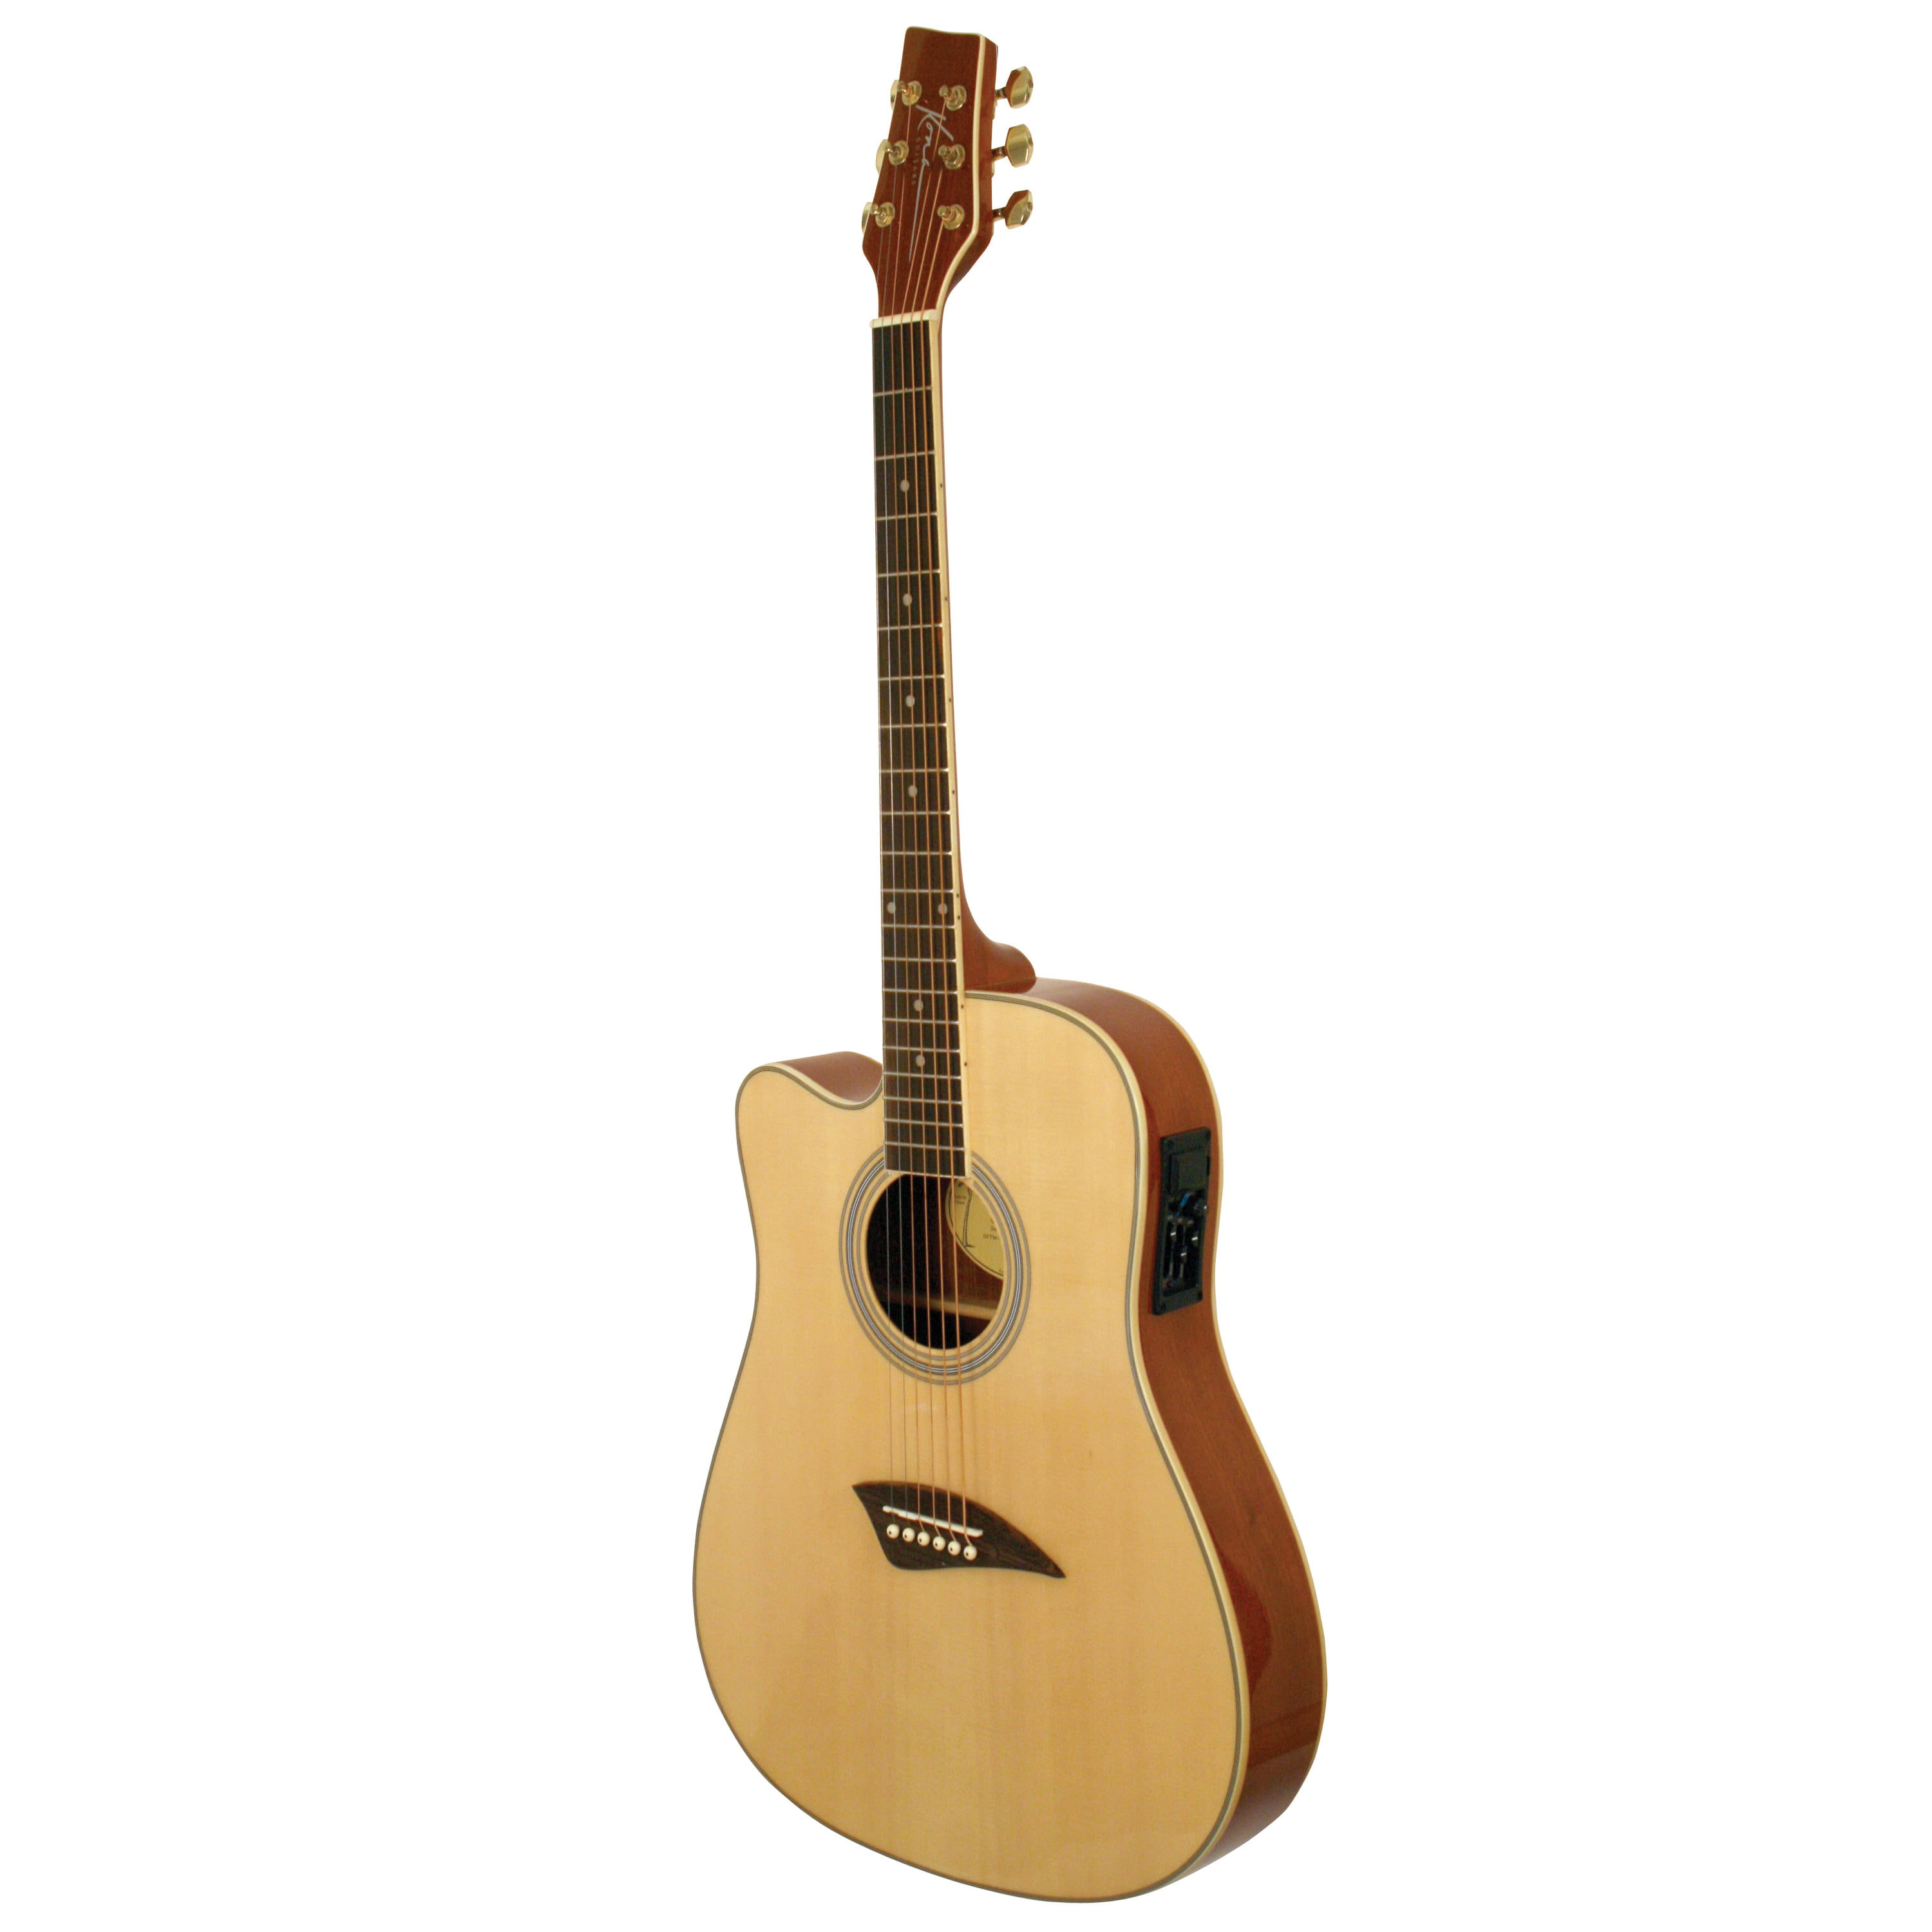 Kona K2LN Left Handed Thin Body Acoustic Electric Guitar With Spruce Top In High Gloss... by Kona Guitars